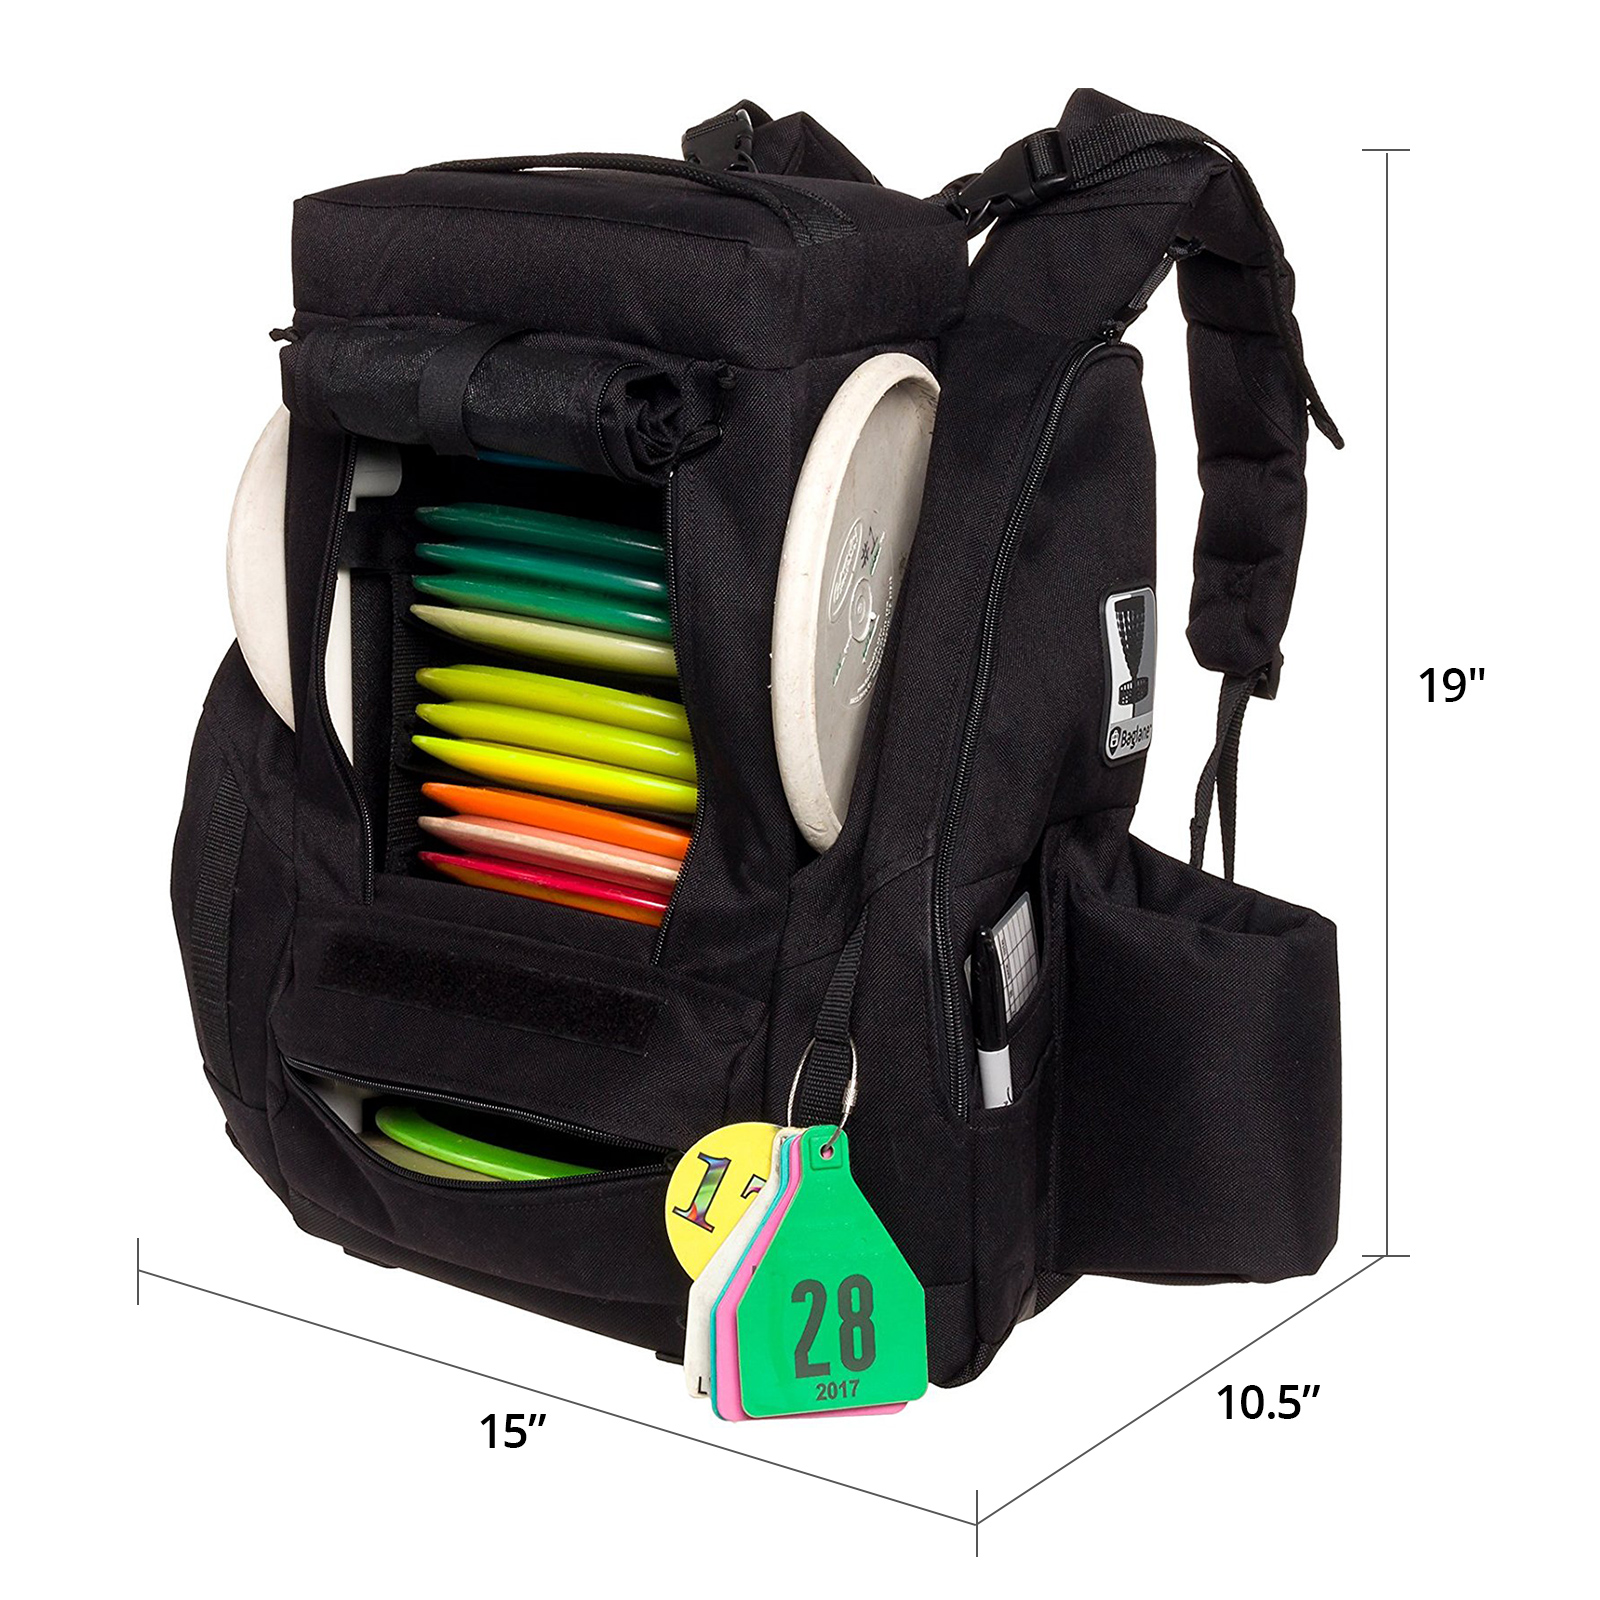 Fusion Pro Details About Fusion Pro 25 Disc Capacity Disc Golf Frisbee Backpack Bag W Built In Seat